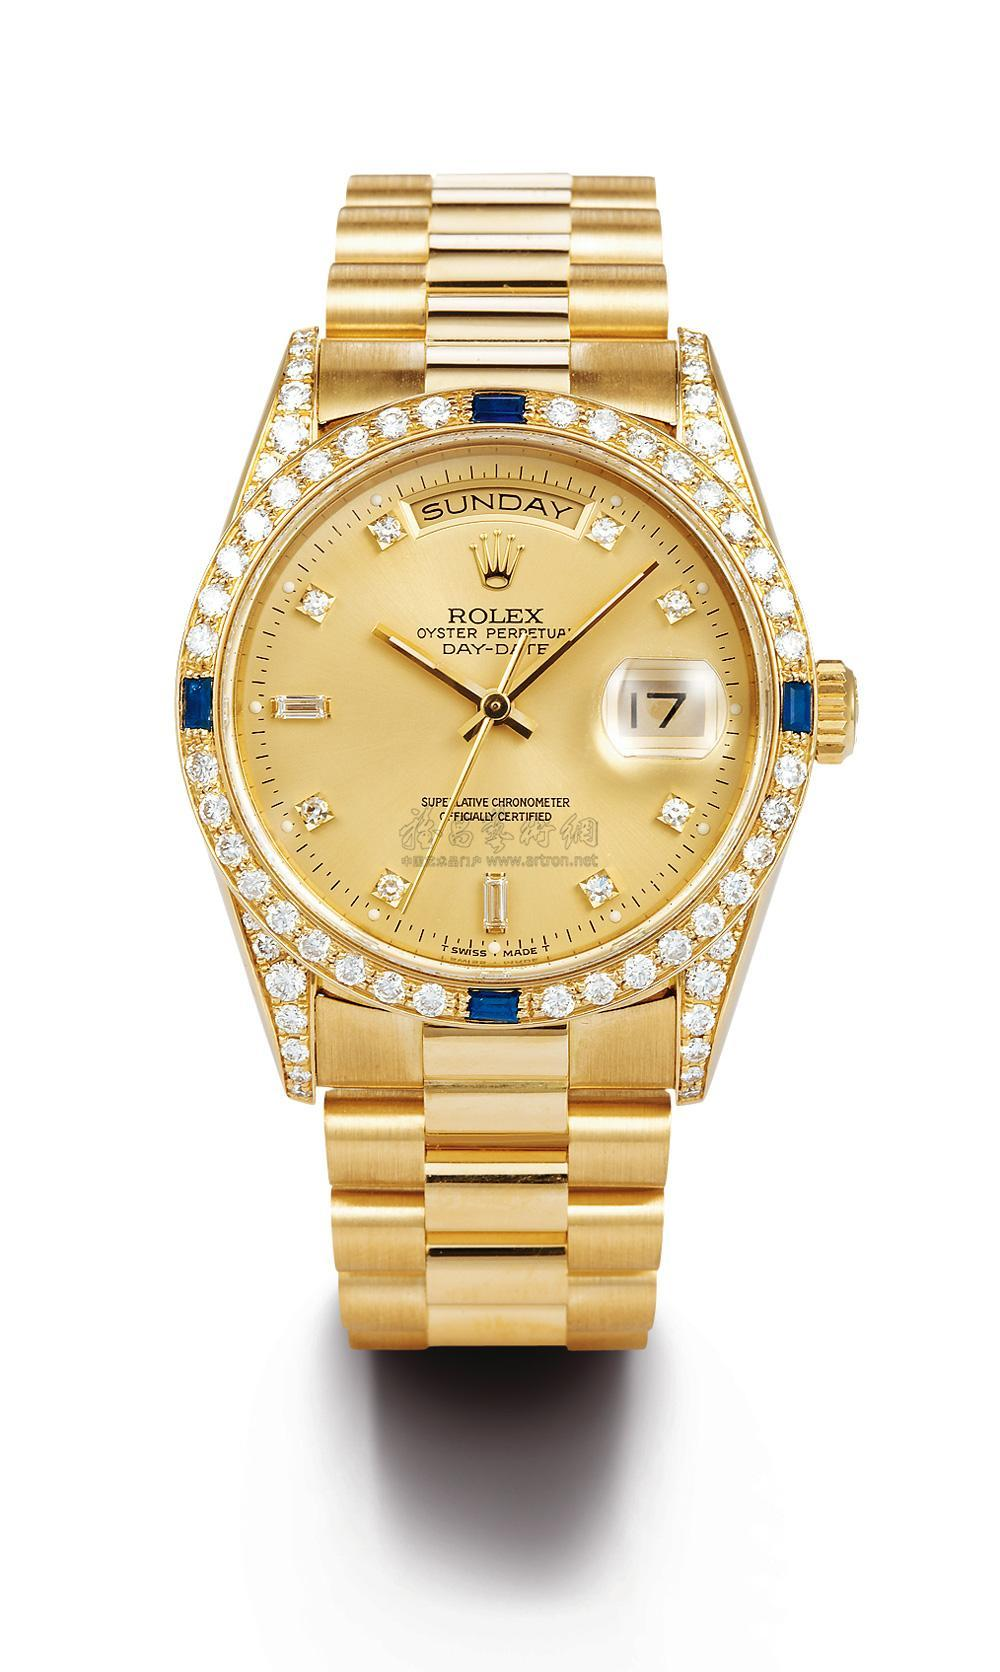 Rolex men's golden watch